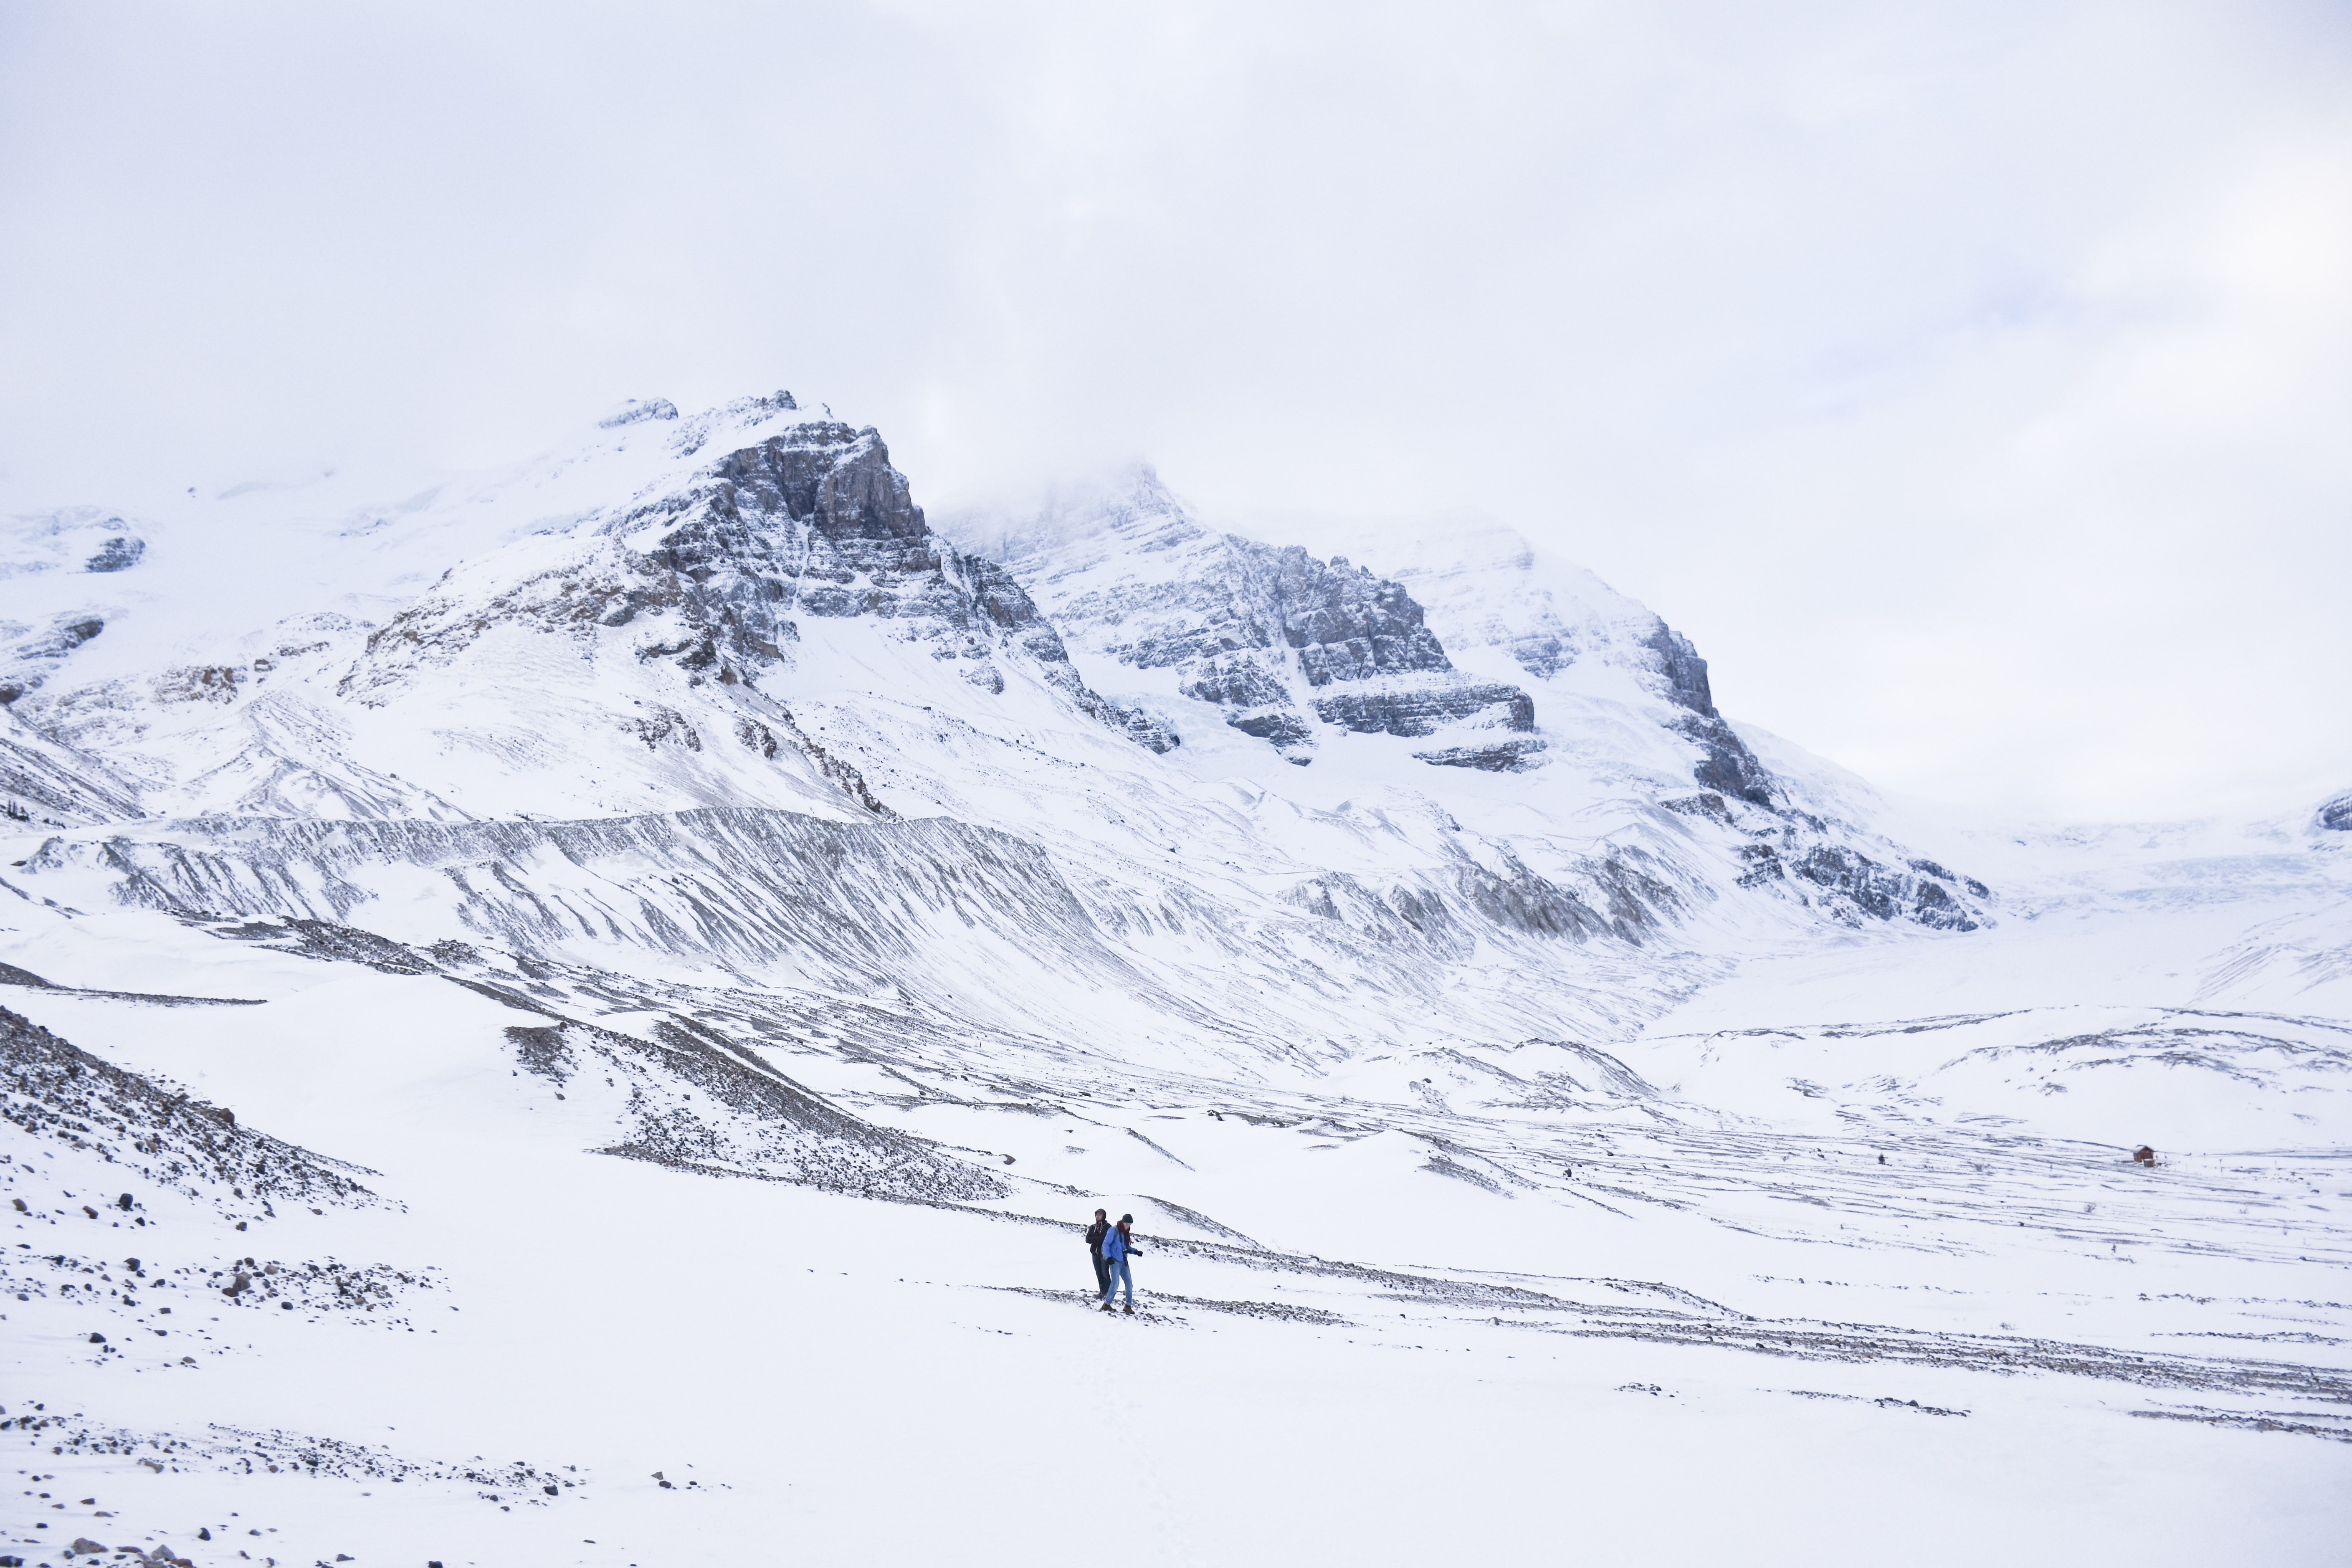 two person walking on snow covered ground next to mountains